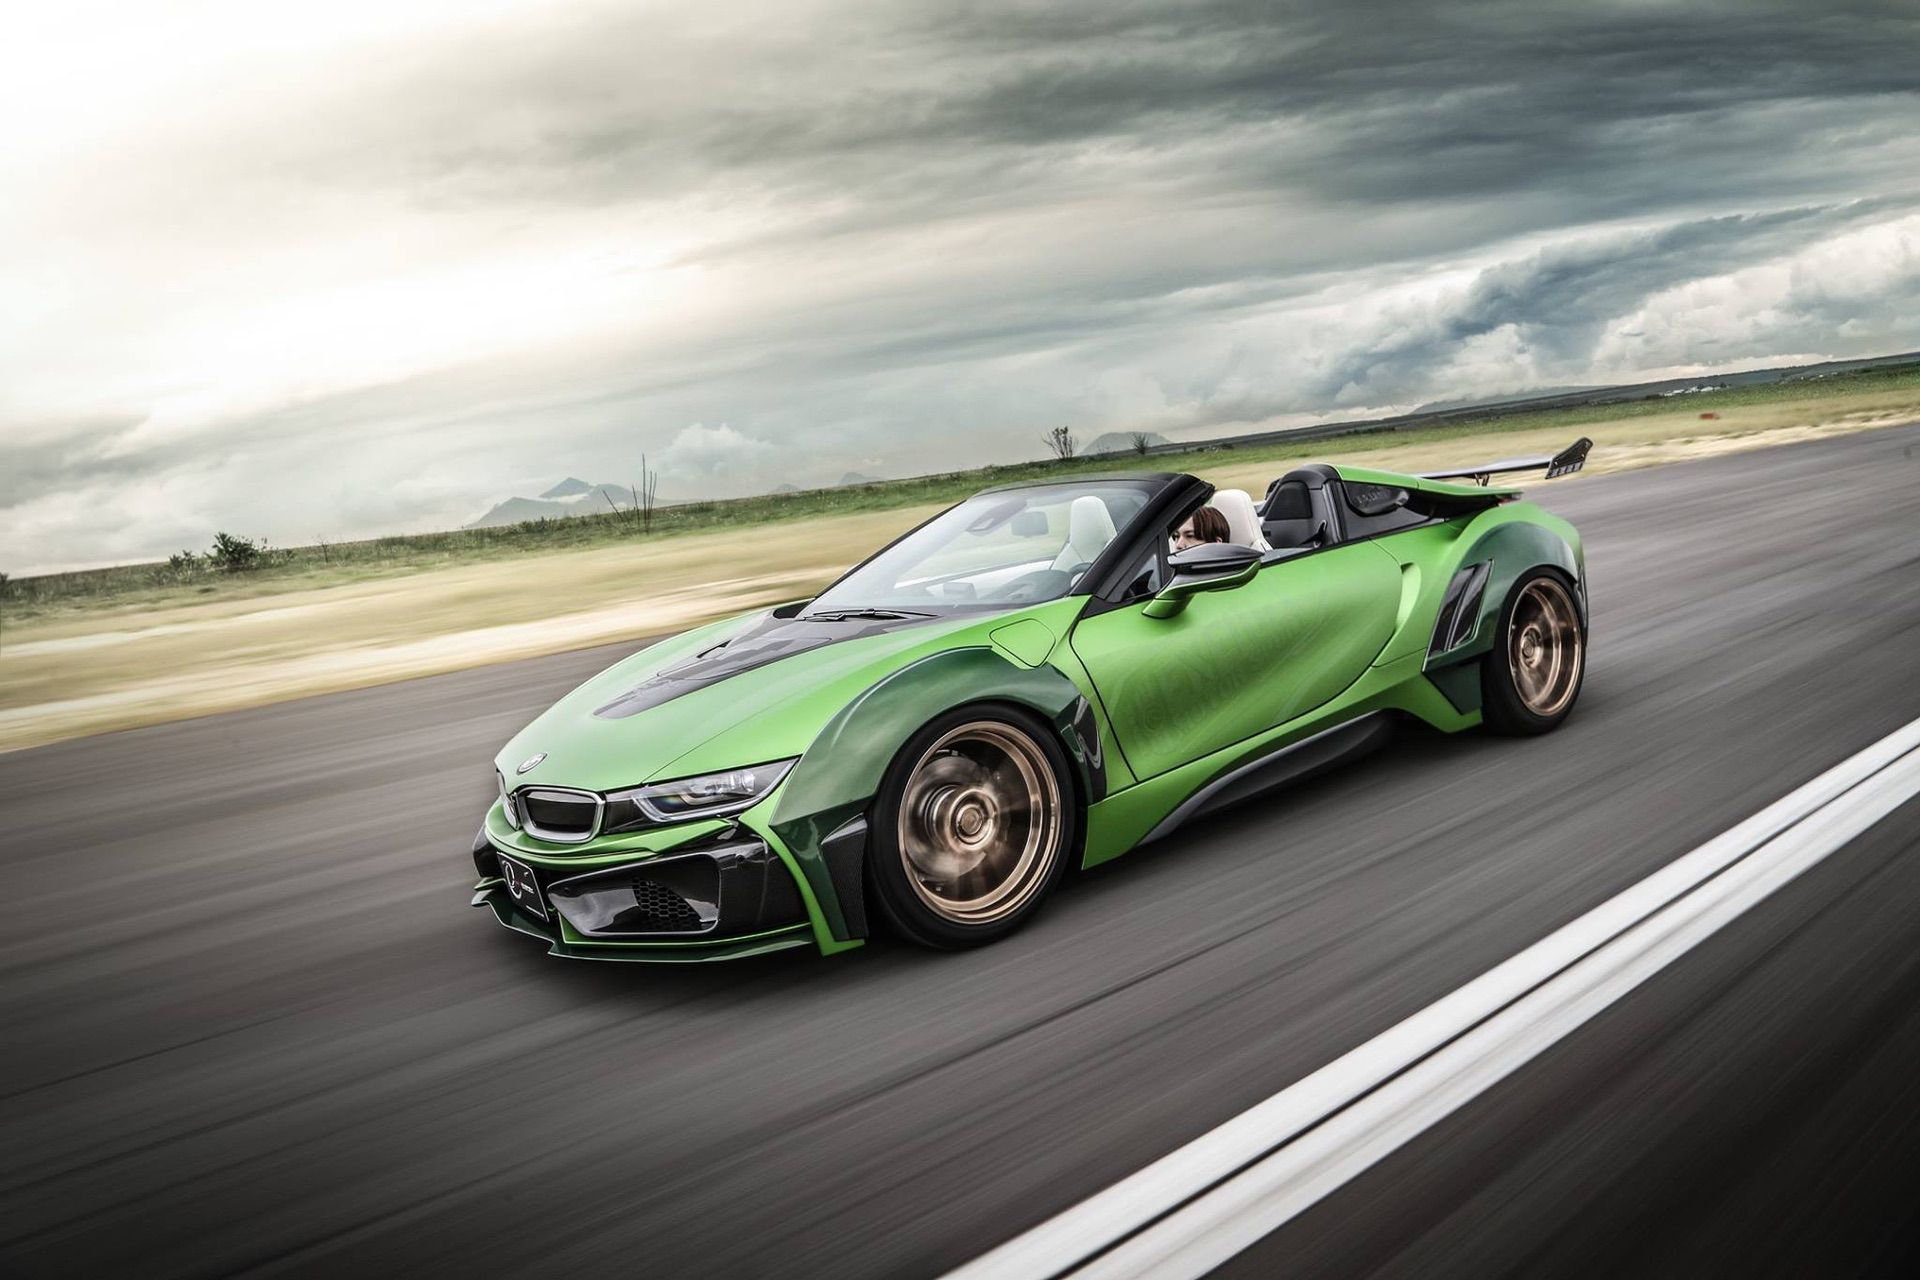 Bmw I8 Roadster Gets Tuned Up Like A Proper Racing Car